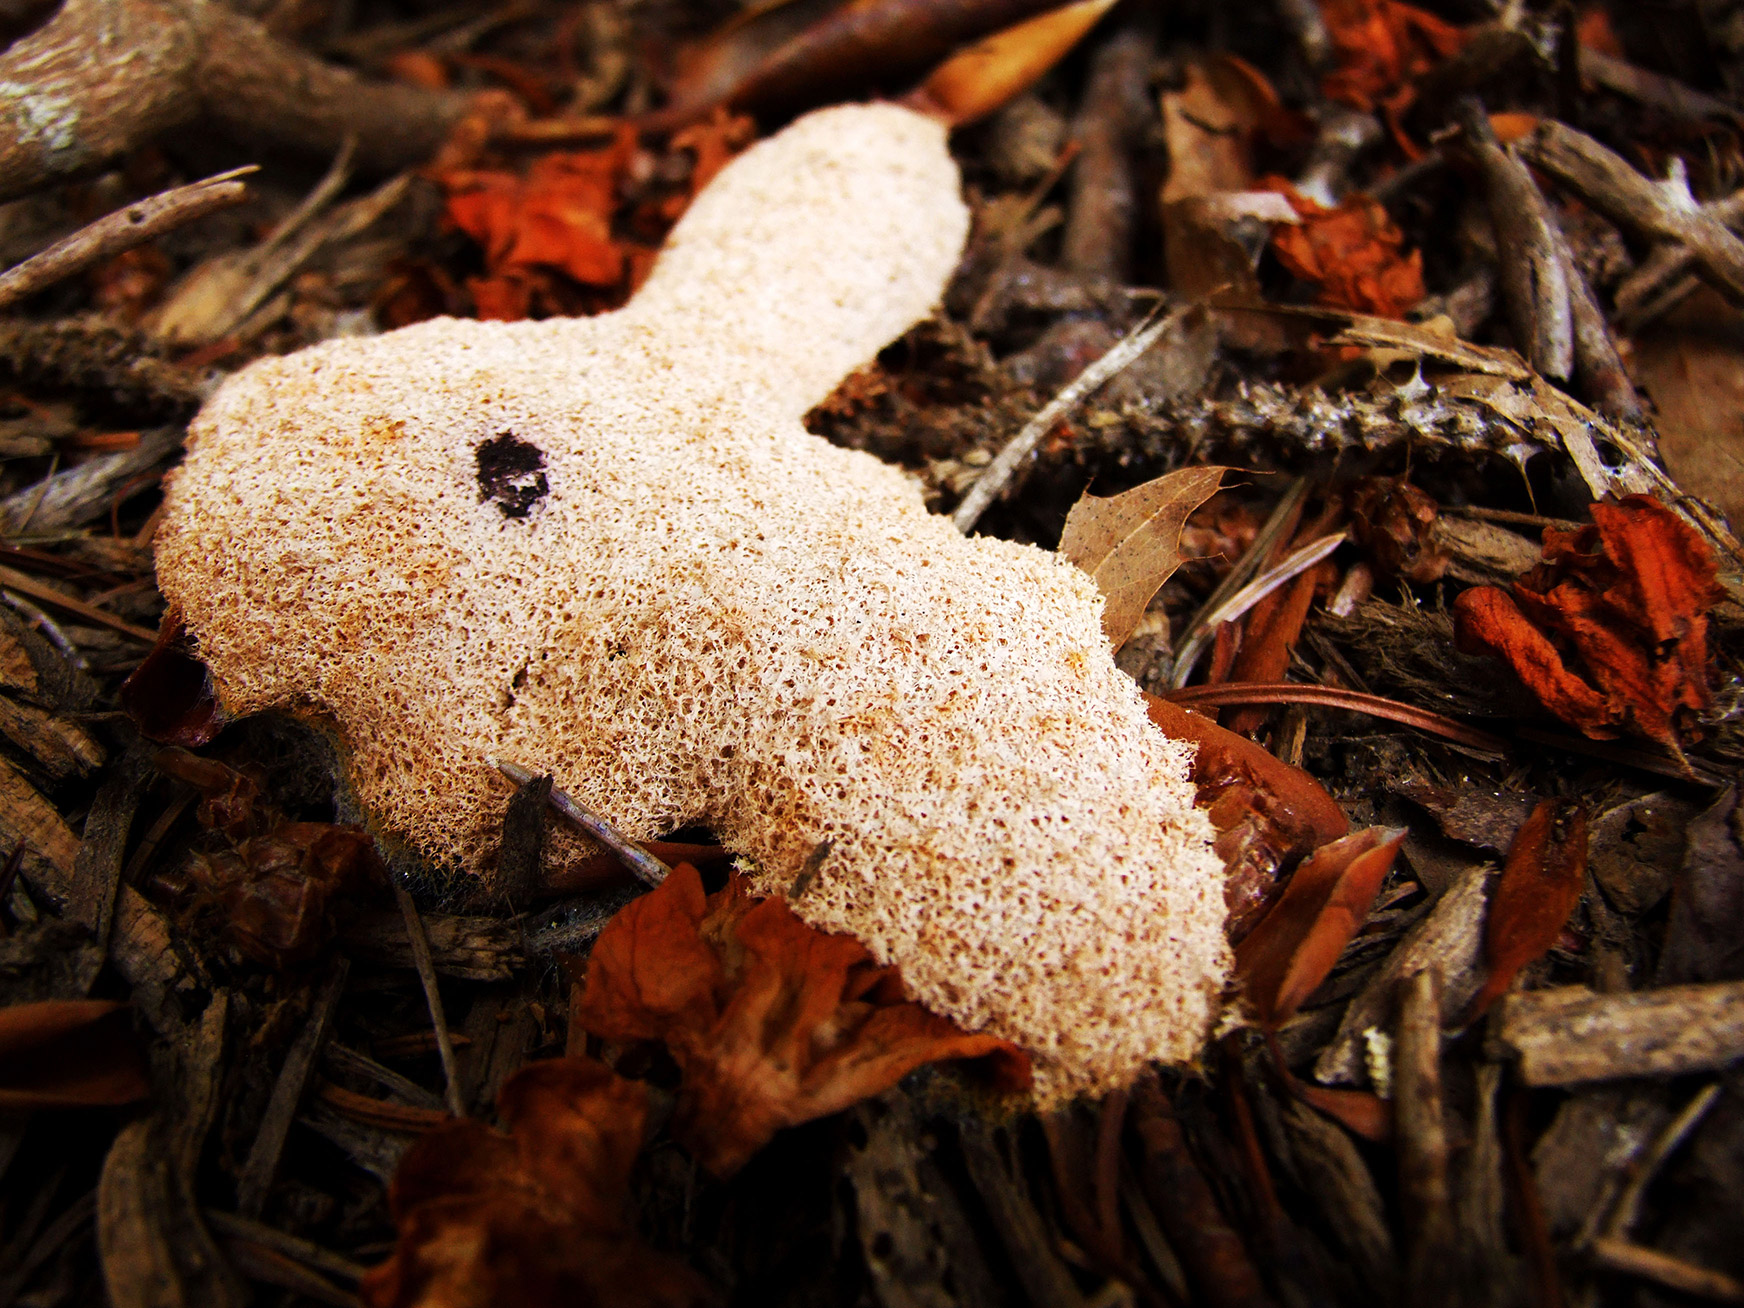 Bunny Shaped Fuliho septica by Autum Mallett